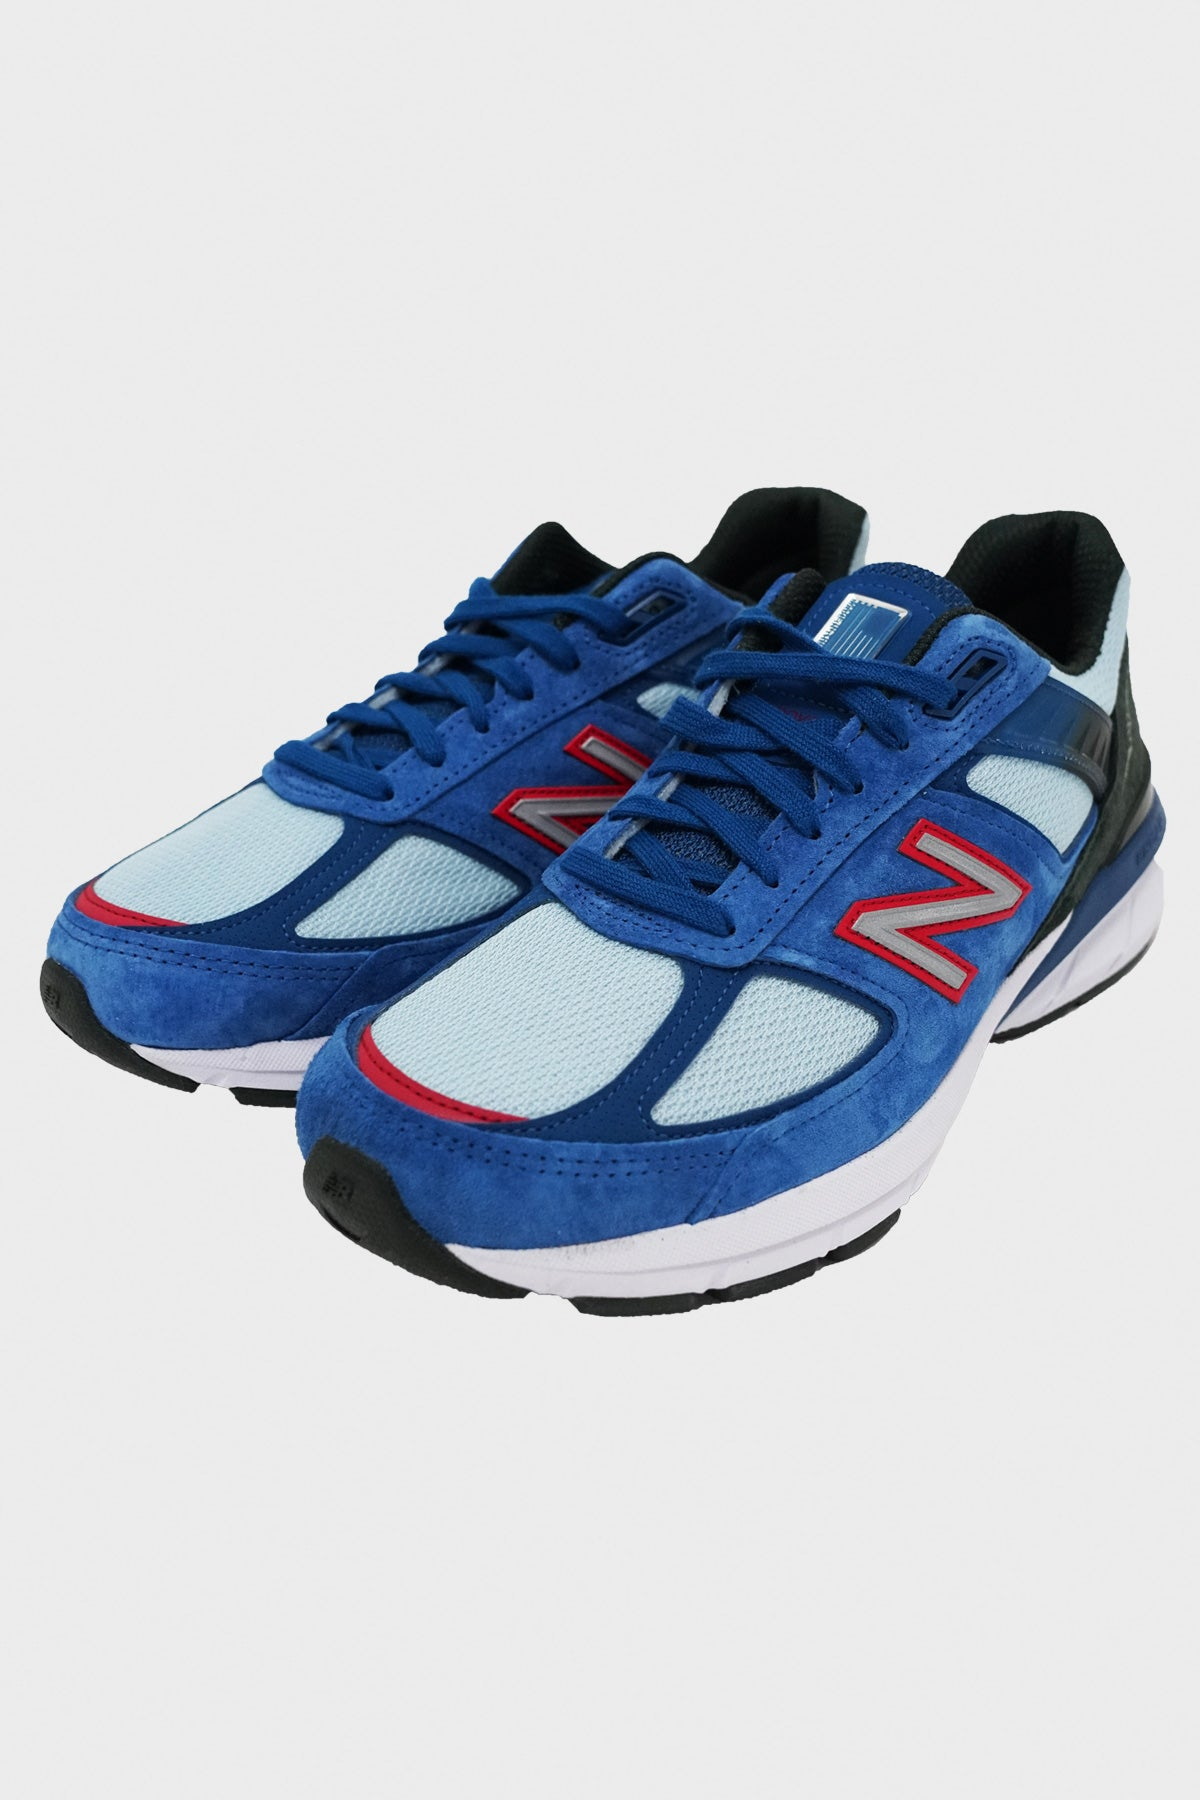 New Balance - M990 - Andromeda Blue/Team Red - Canoe Club